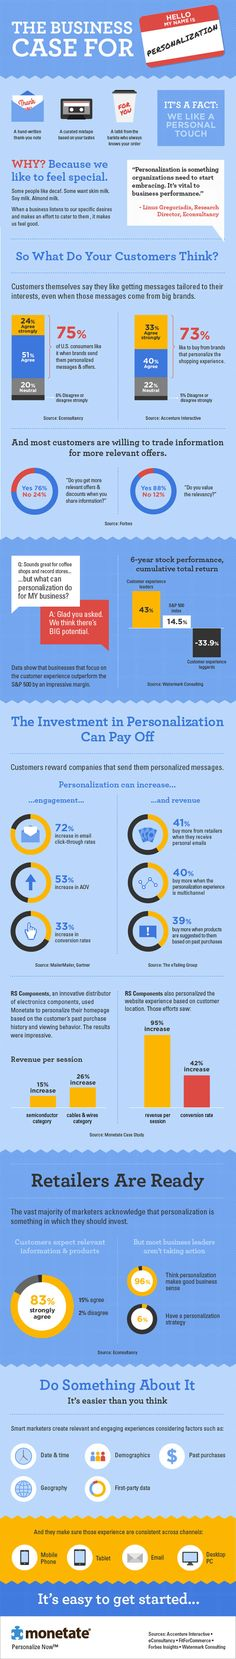 business-case-for-personalization